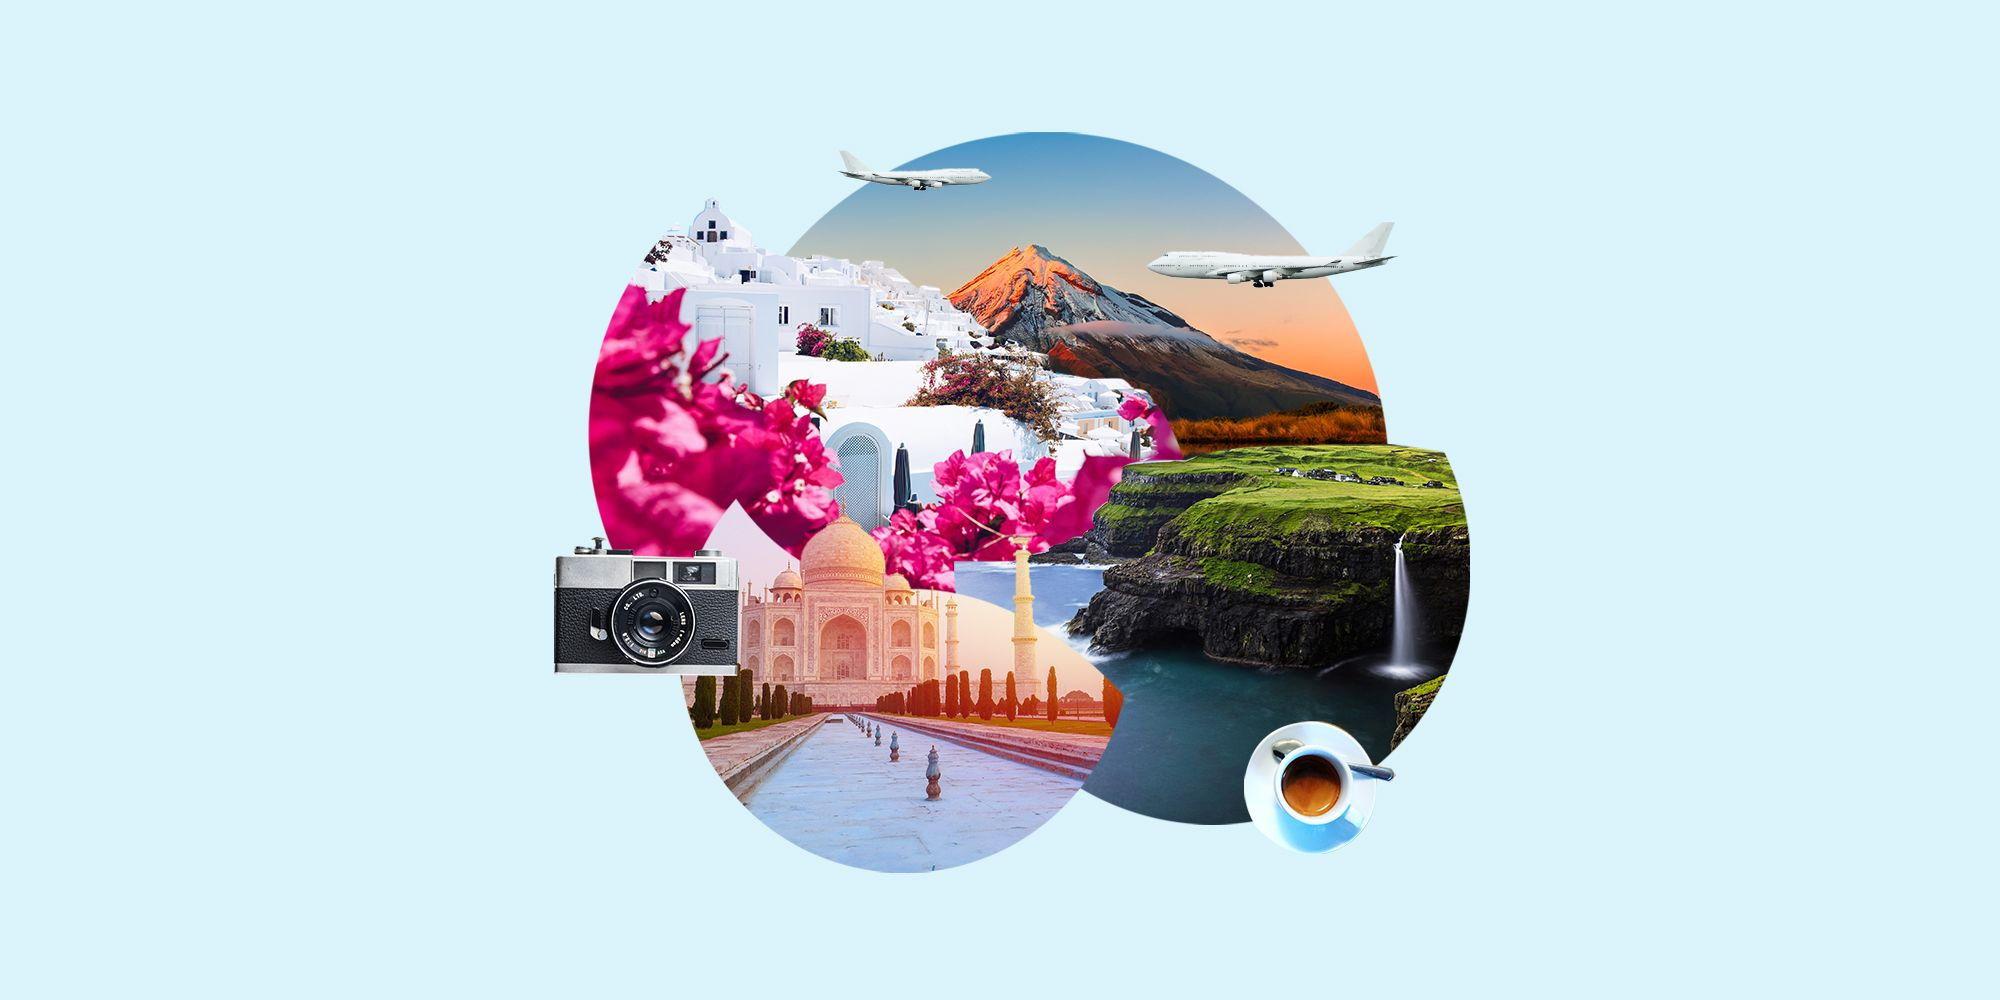 How When To Plan Your Next Trip In The Time Of Covid 19 Coronavirus Travel